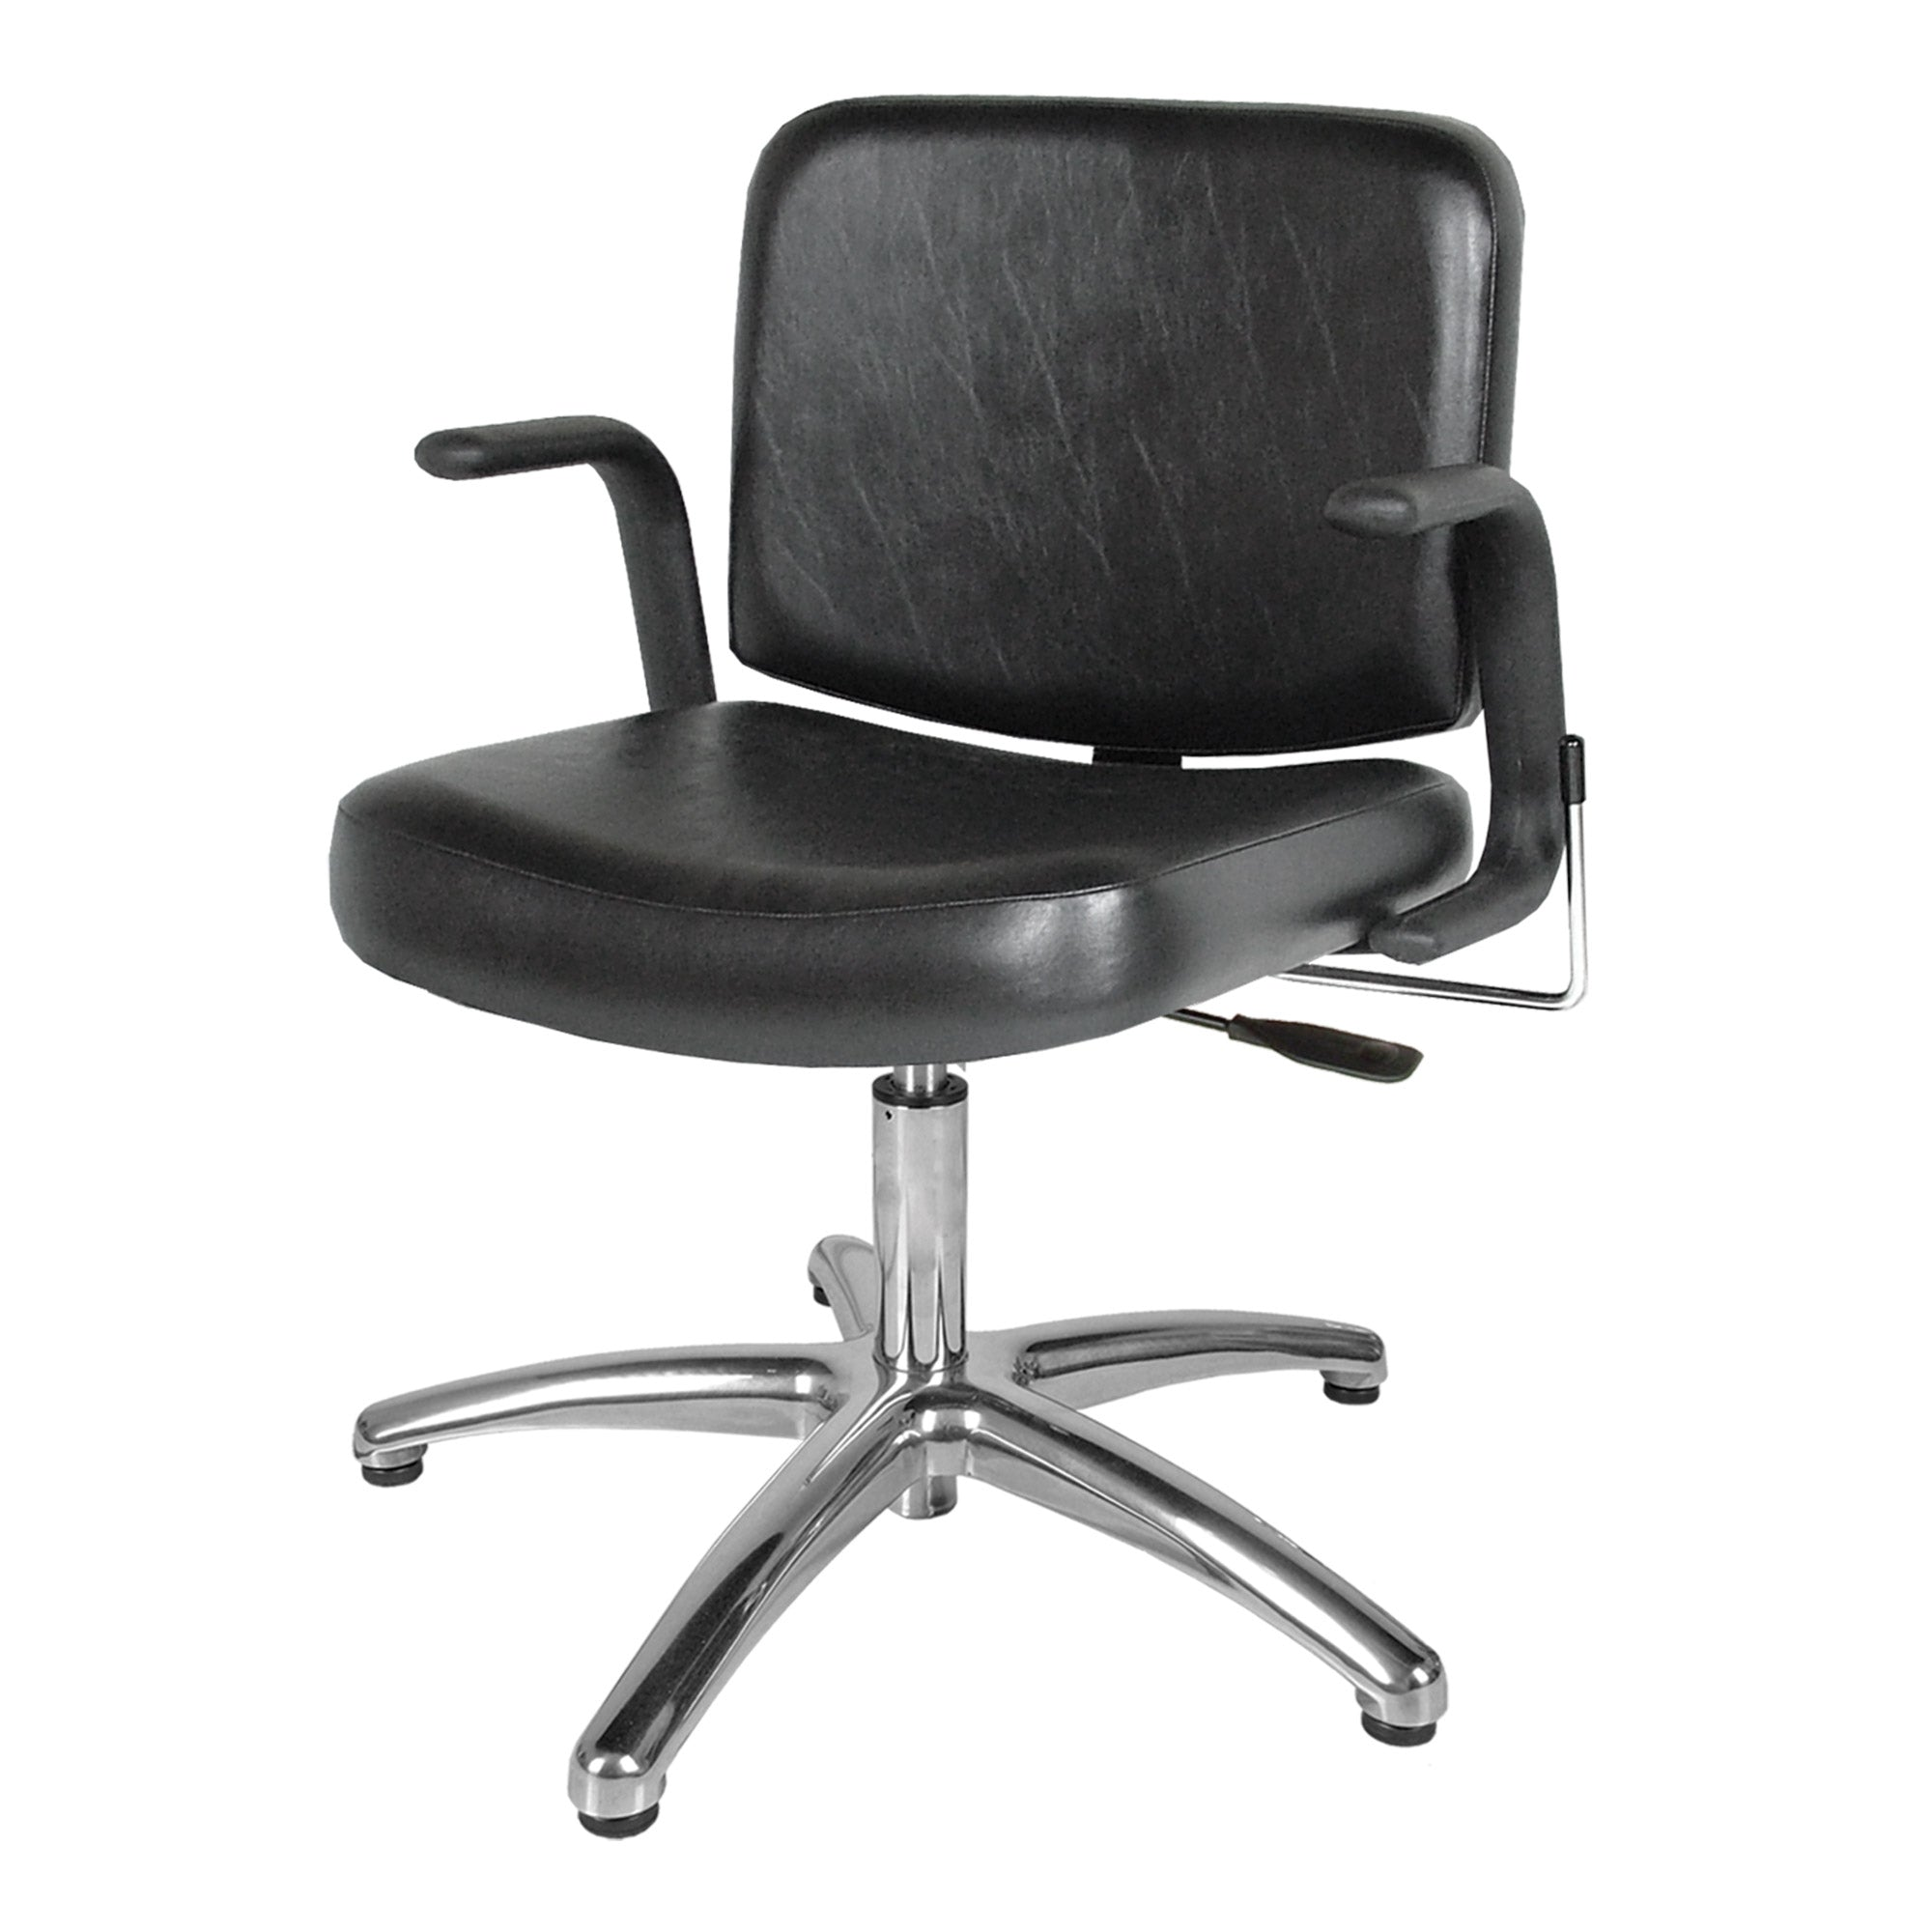 Monte Lever-Control Shampoo Chair - Collins